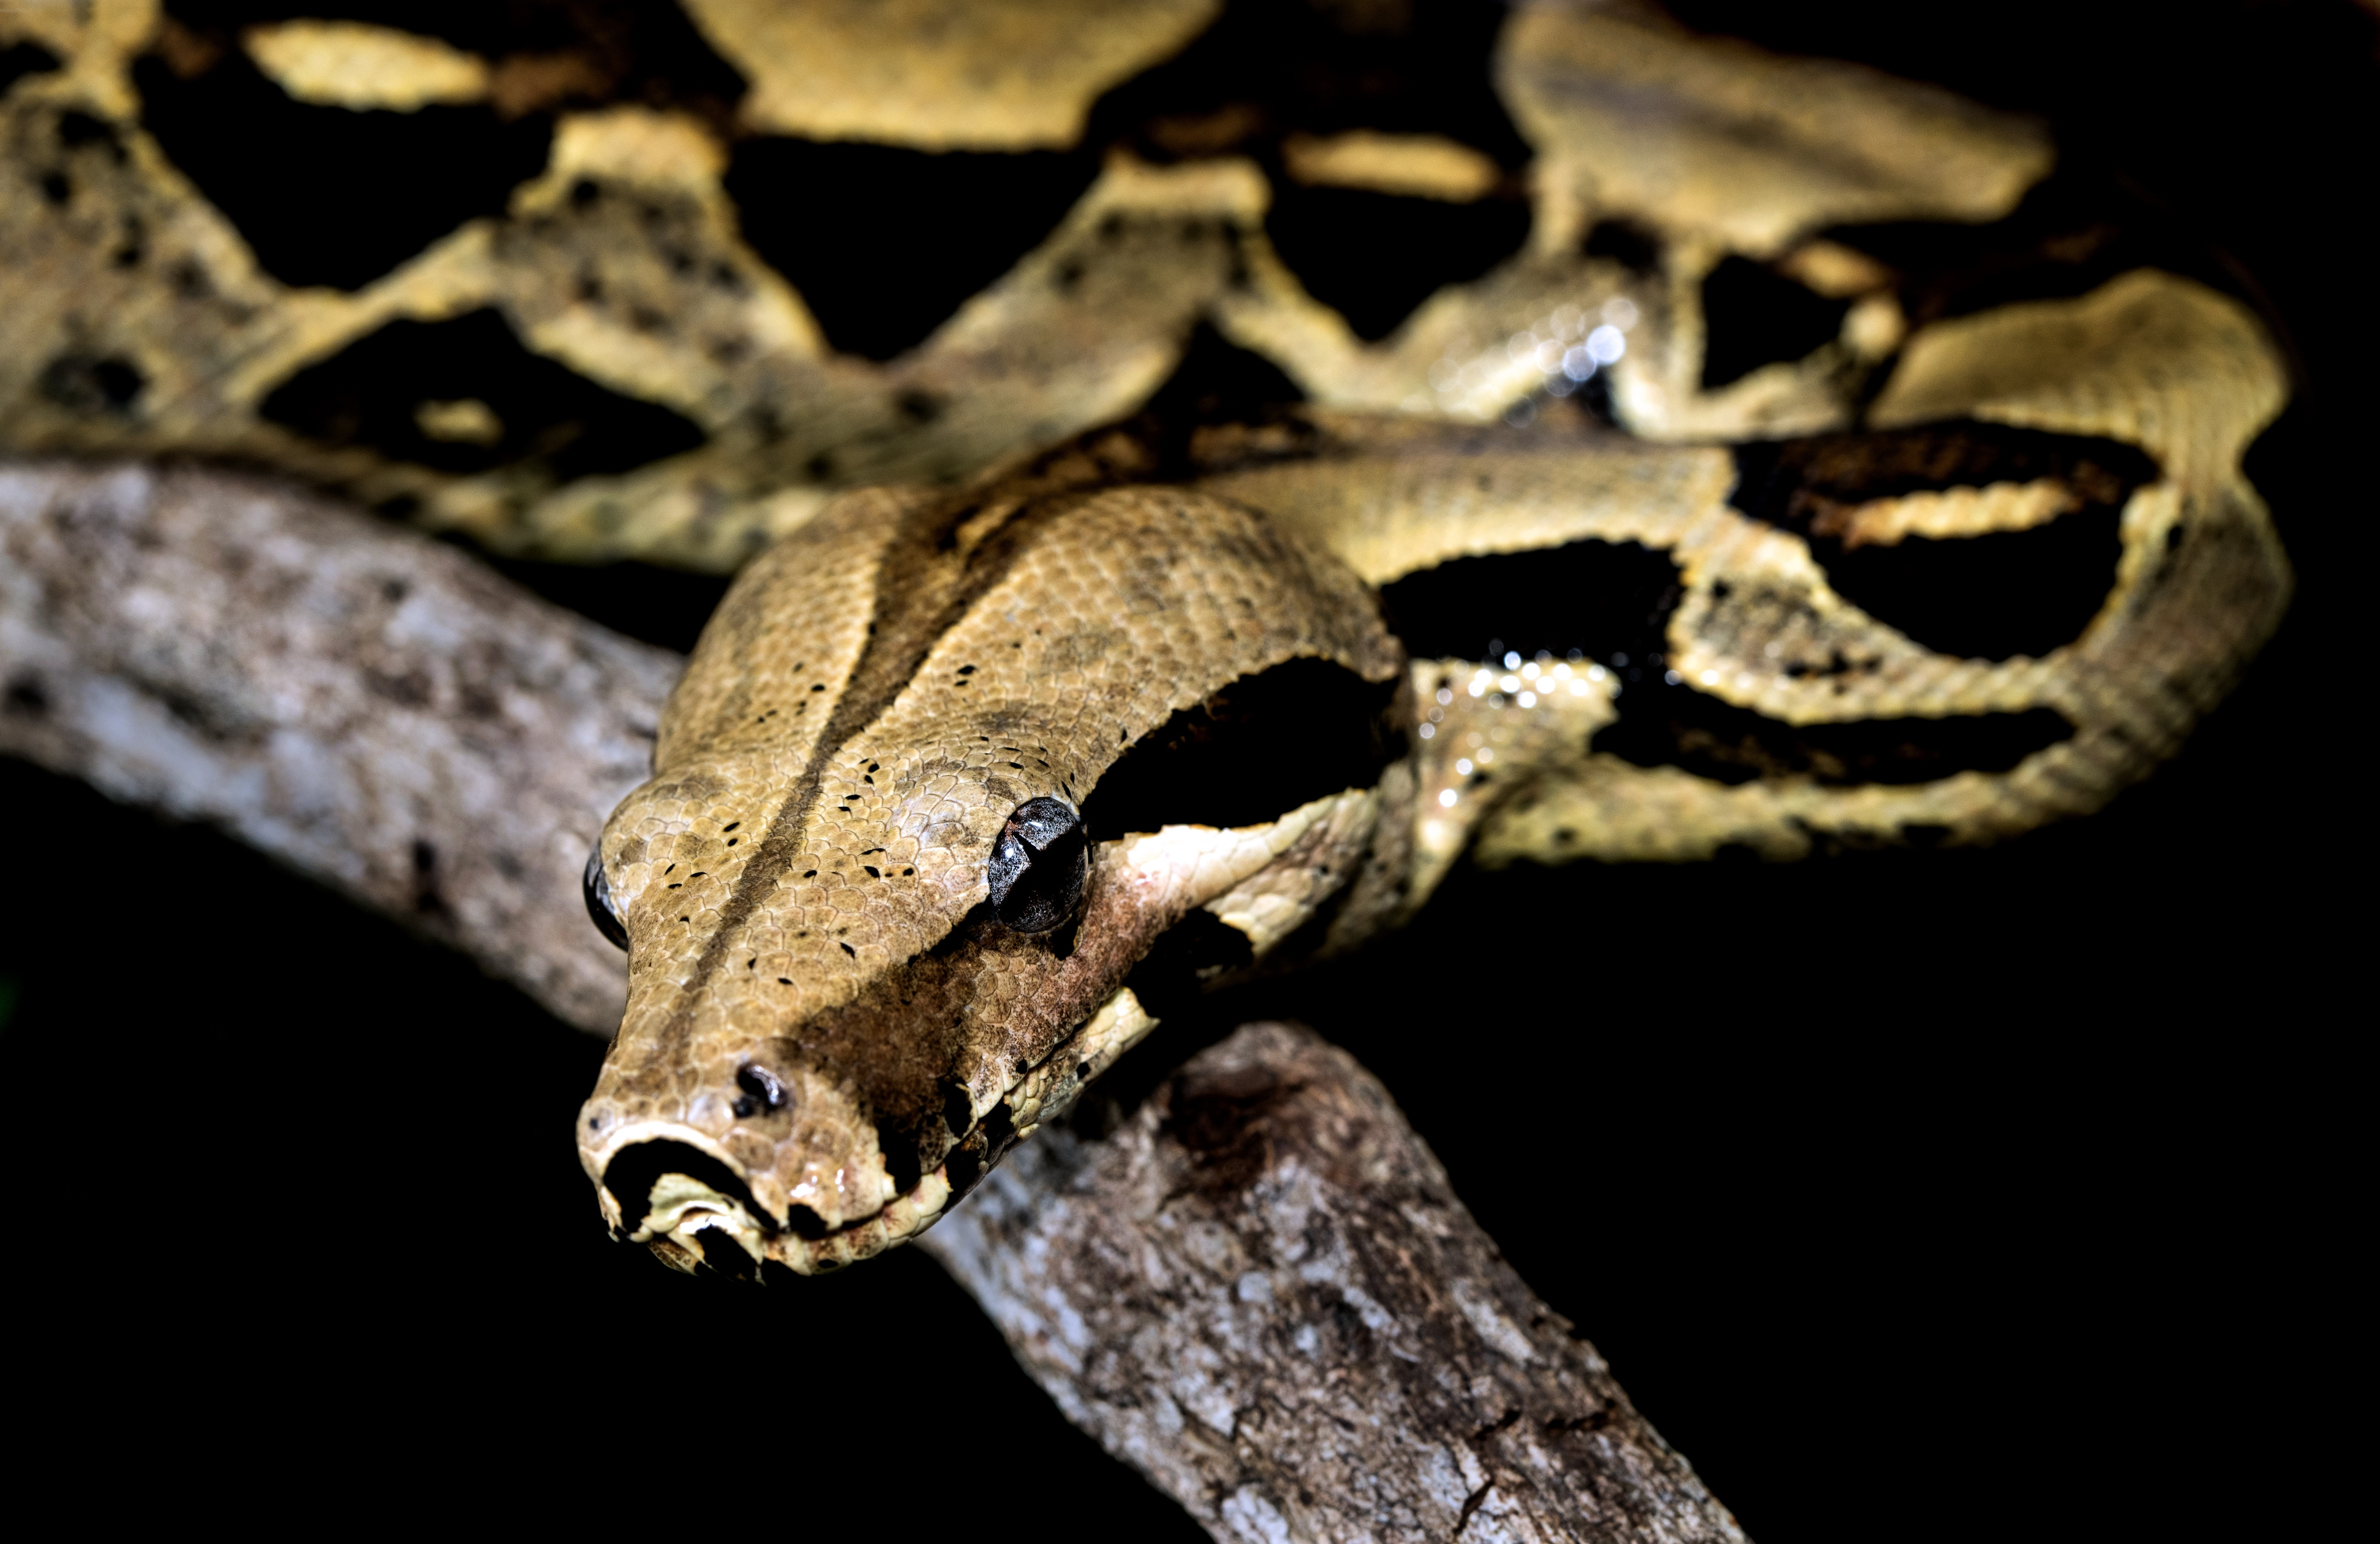 Brown and black snake on a tree branch; black bacground.